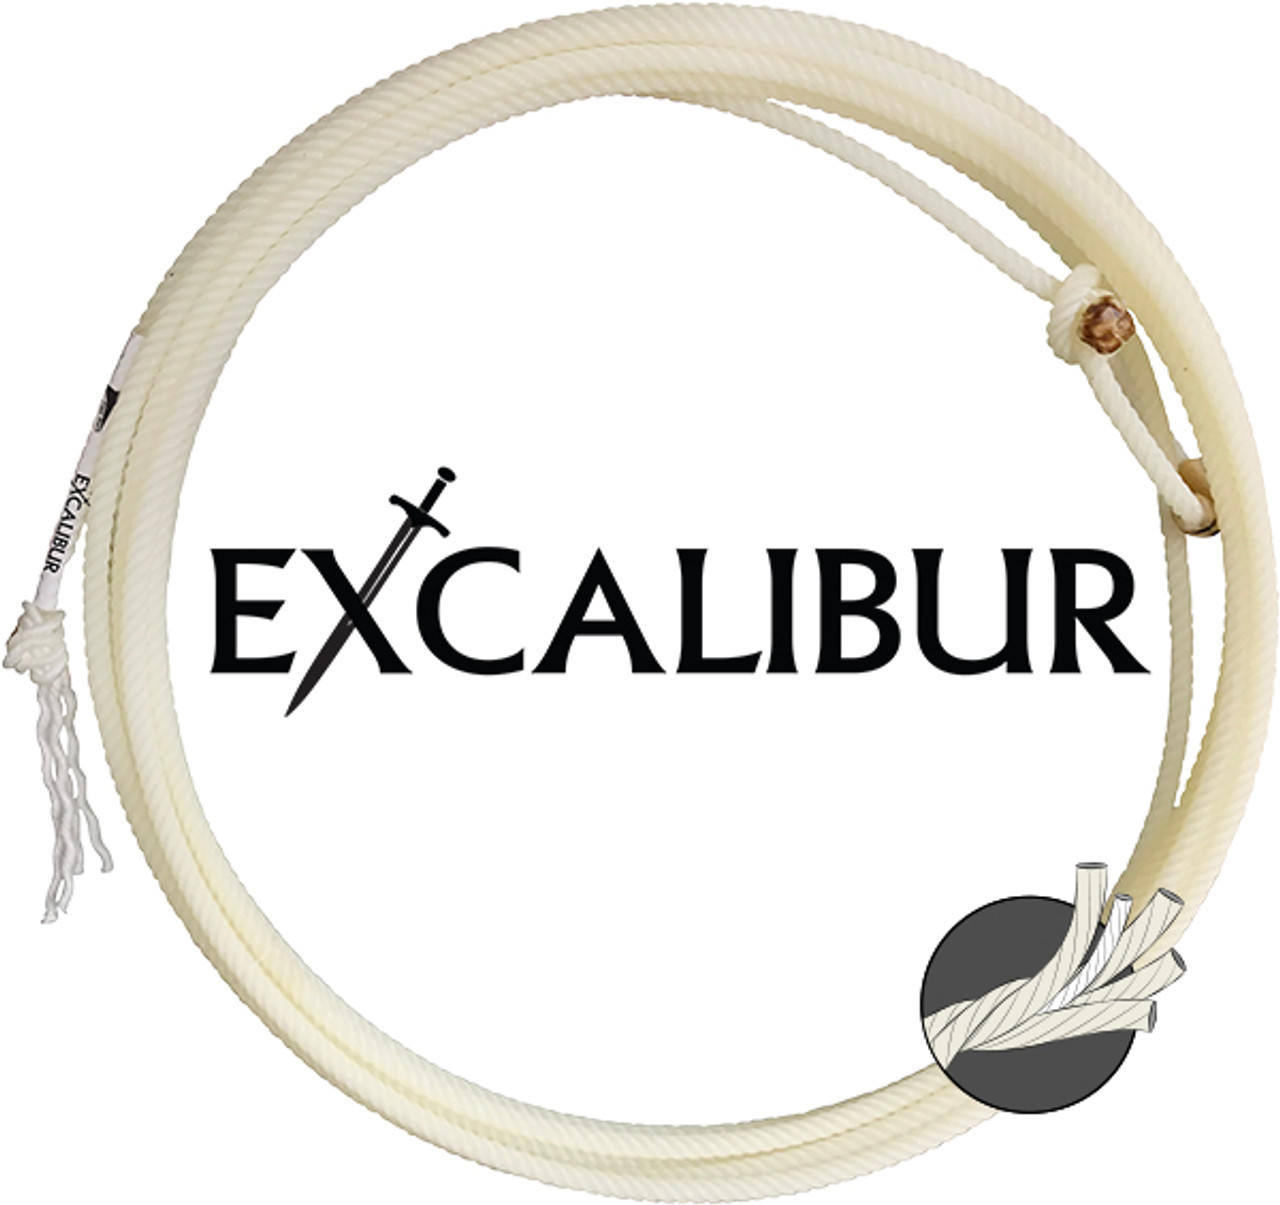 Excalibur The Excalibur is a poly-blend four-strand with a core interior that is natural in color for high visibility. The Excalibur appeals to team ropers who prefer a rope medium in size. The Excalibur is less affected by heat and direct sunlight due to the poly fiber.  Head ropes are 31' and come in XXS, XS, S, and MS. Heel ropes are 35' and come in S, MS, M, and HM.  4-STRAND NYLON/POLY BLEND AVAILABLE IN: Head and heel ropes with a core interior HEAD LAYS: XXS XS S MS HEAD LENGTH: 31' HEAD DIAMETER: Medium HEEL LAYS: S MS M HM HEEL LENGTH: 35' HEEL DIAMETER: Medium EVENT: Team Roping